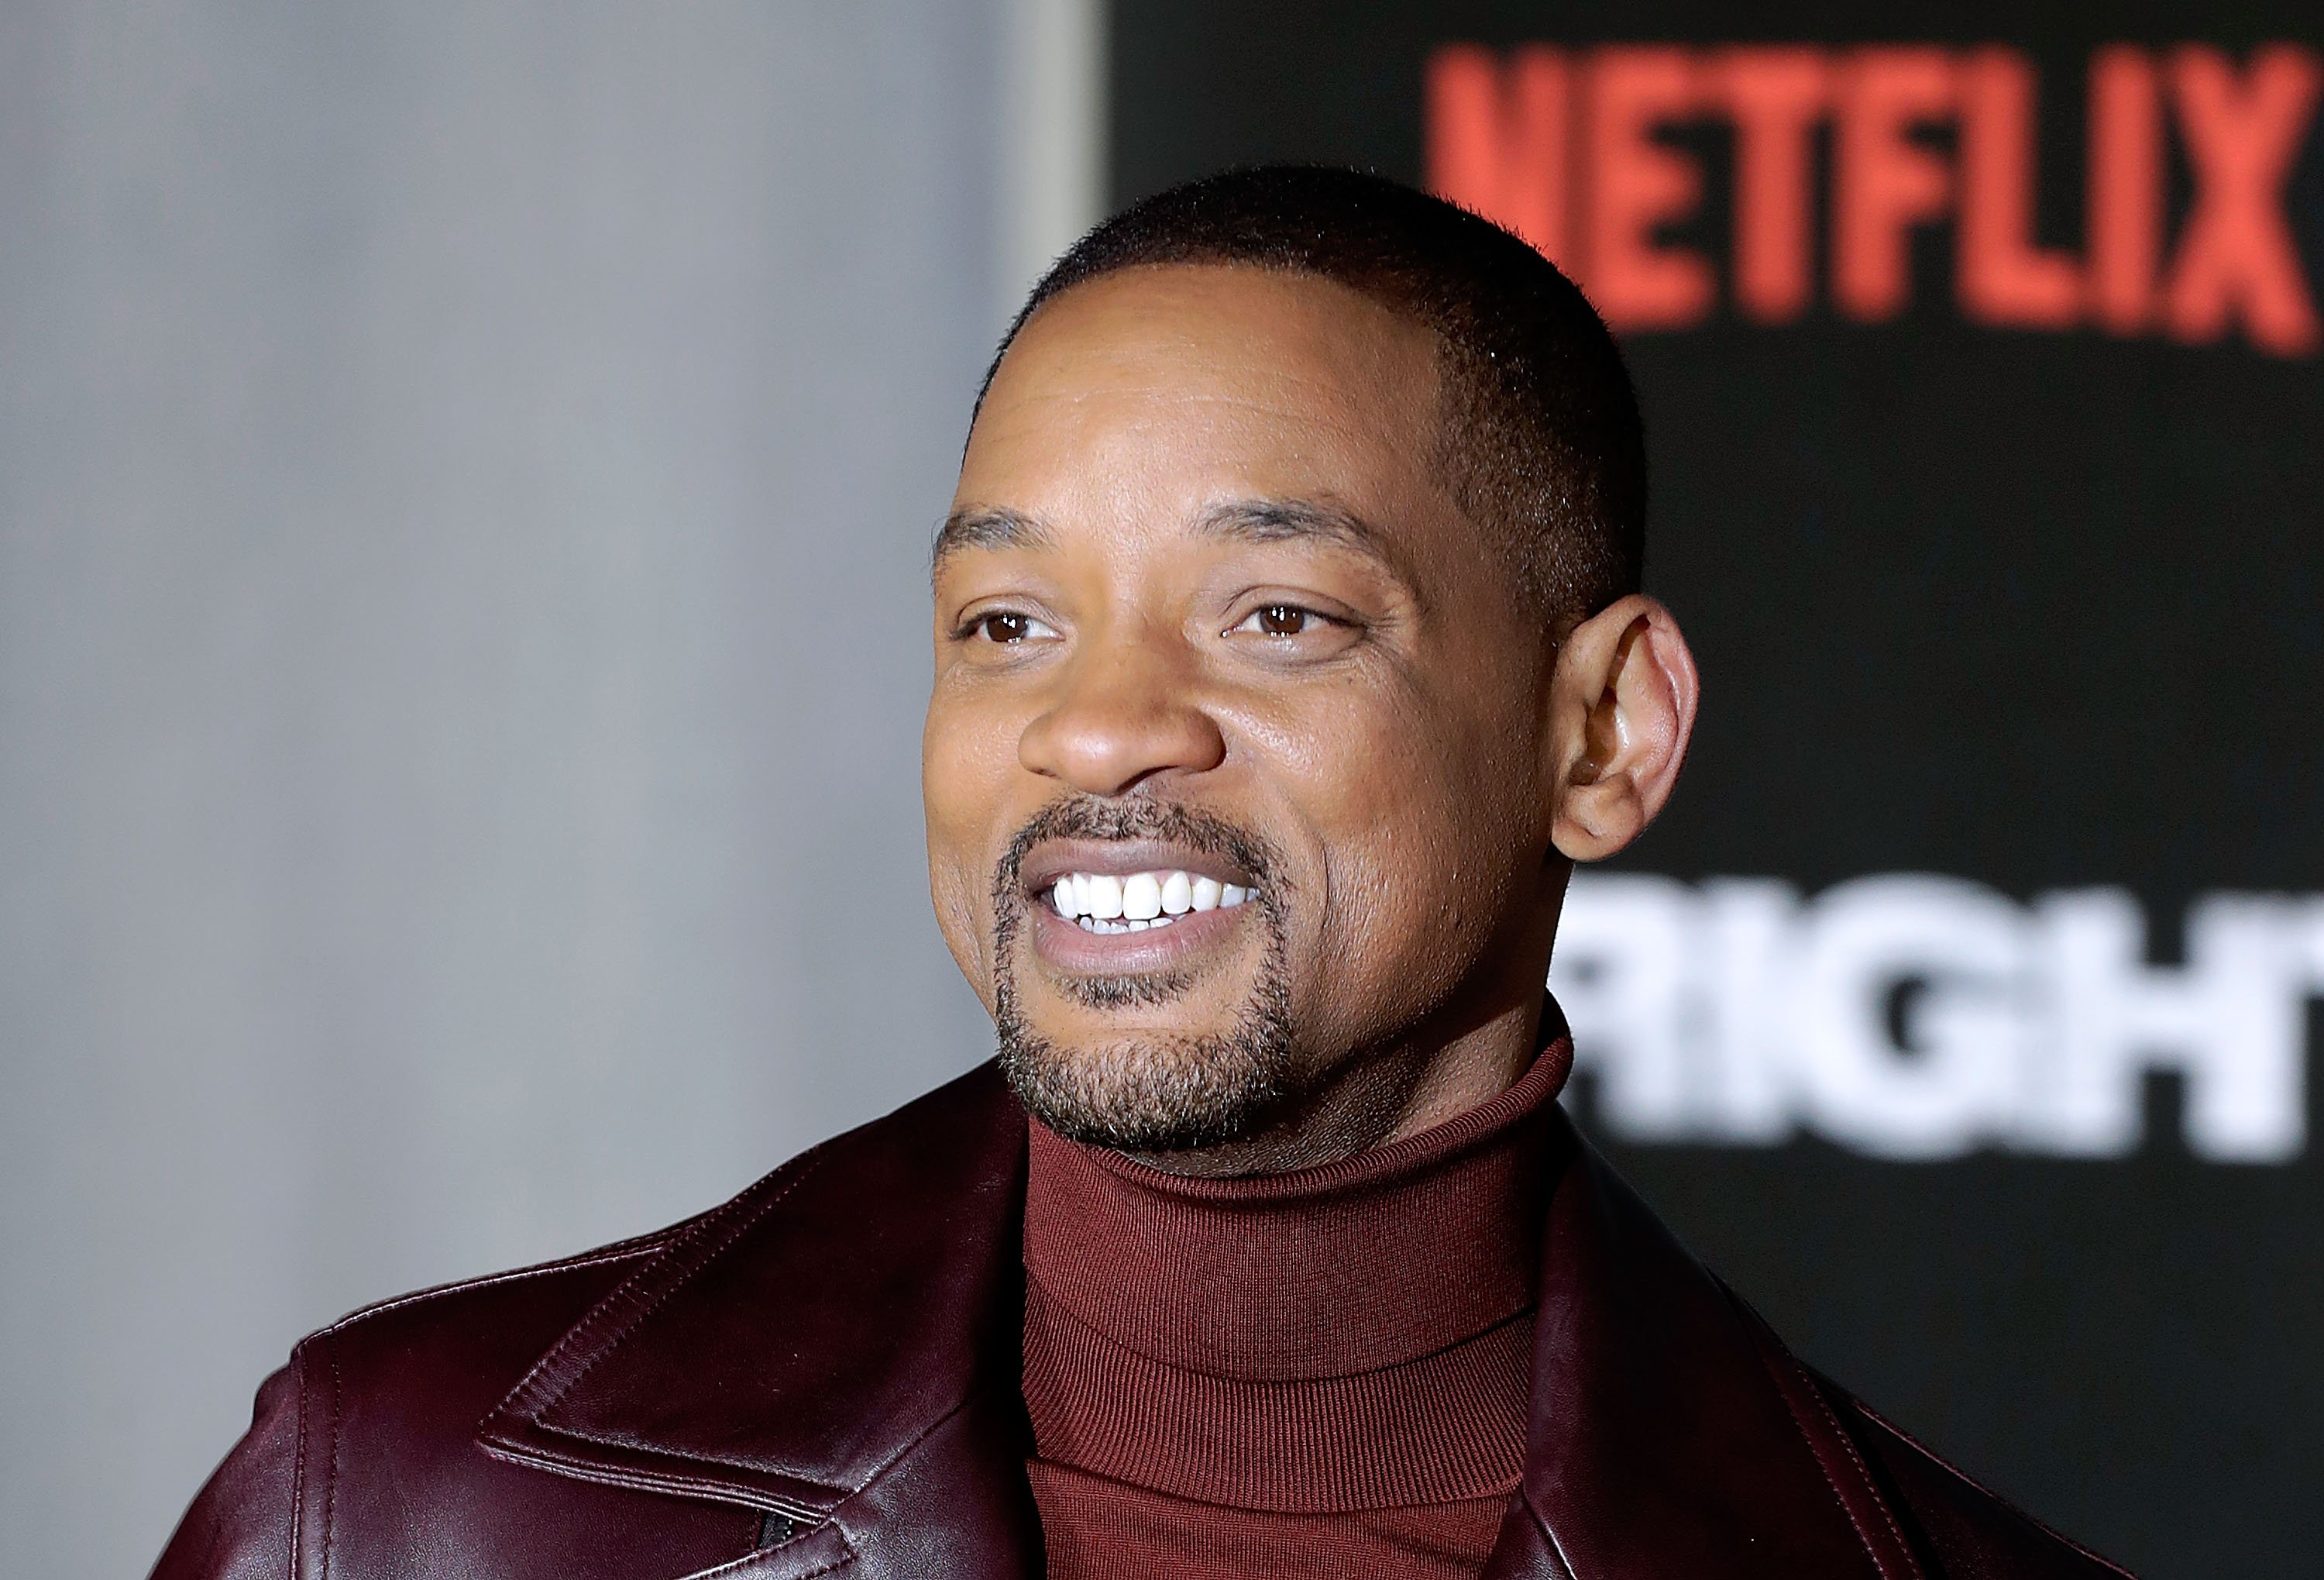 """Will Smith at the European premiere of """"Bright"""" in December 2017. 